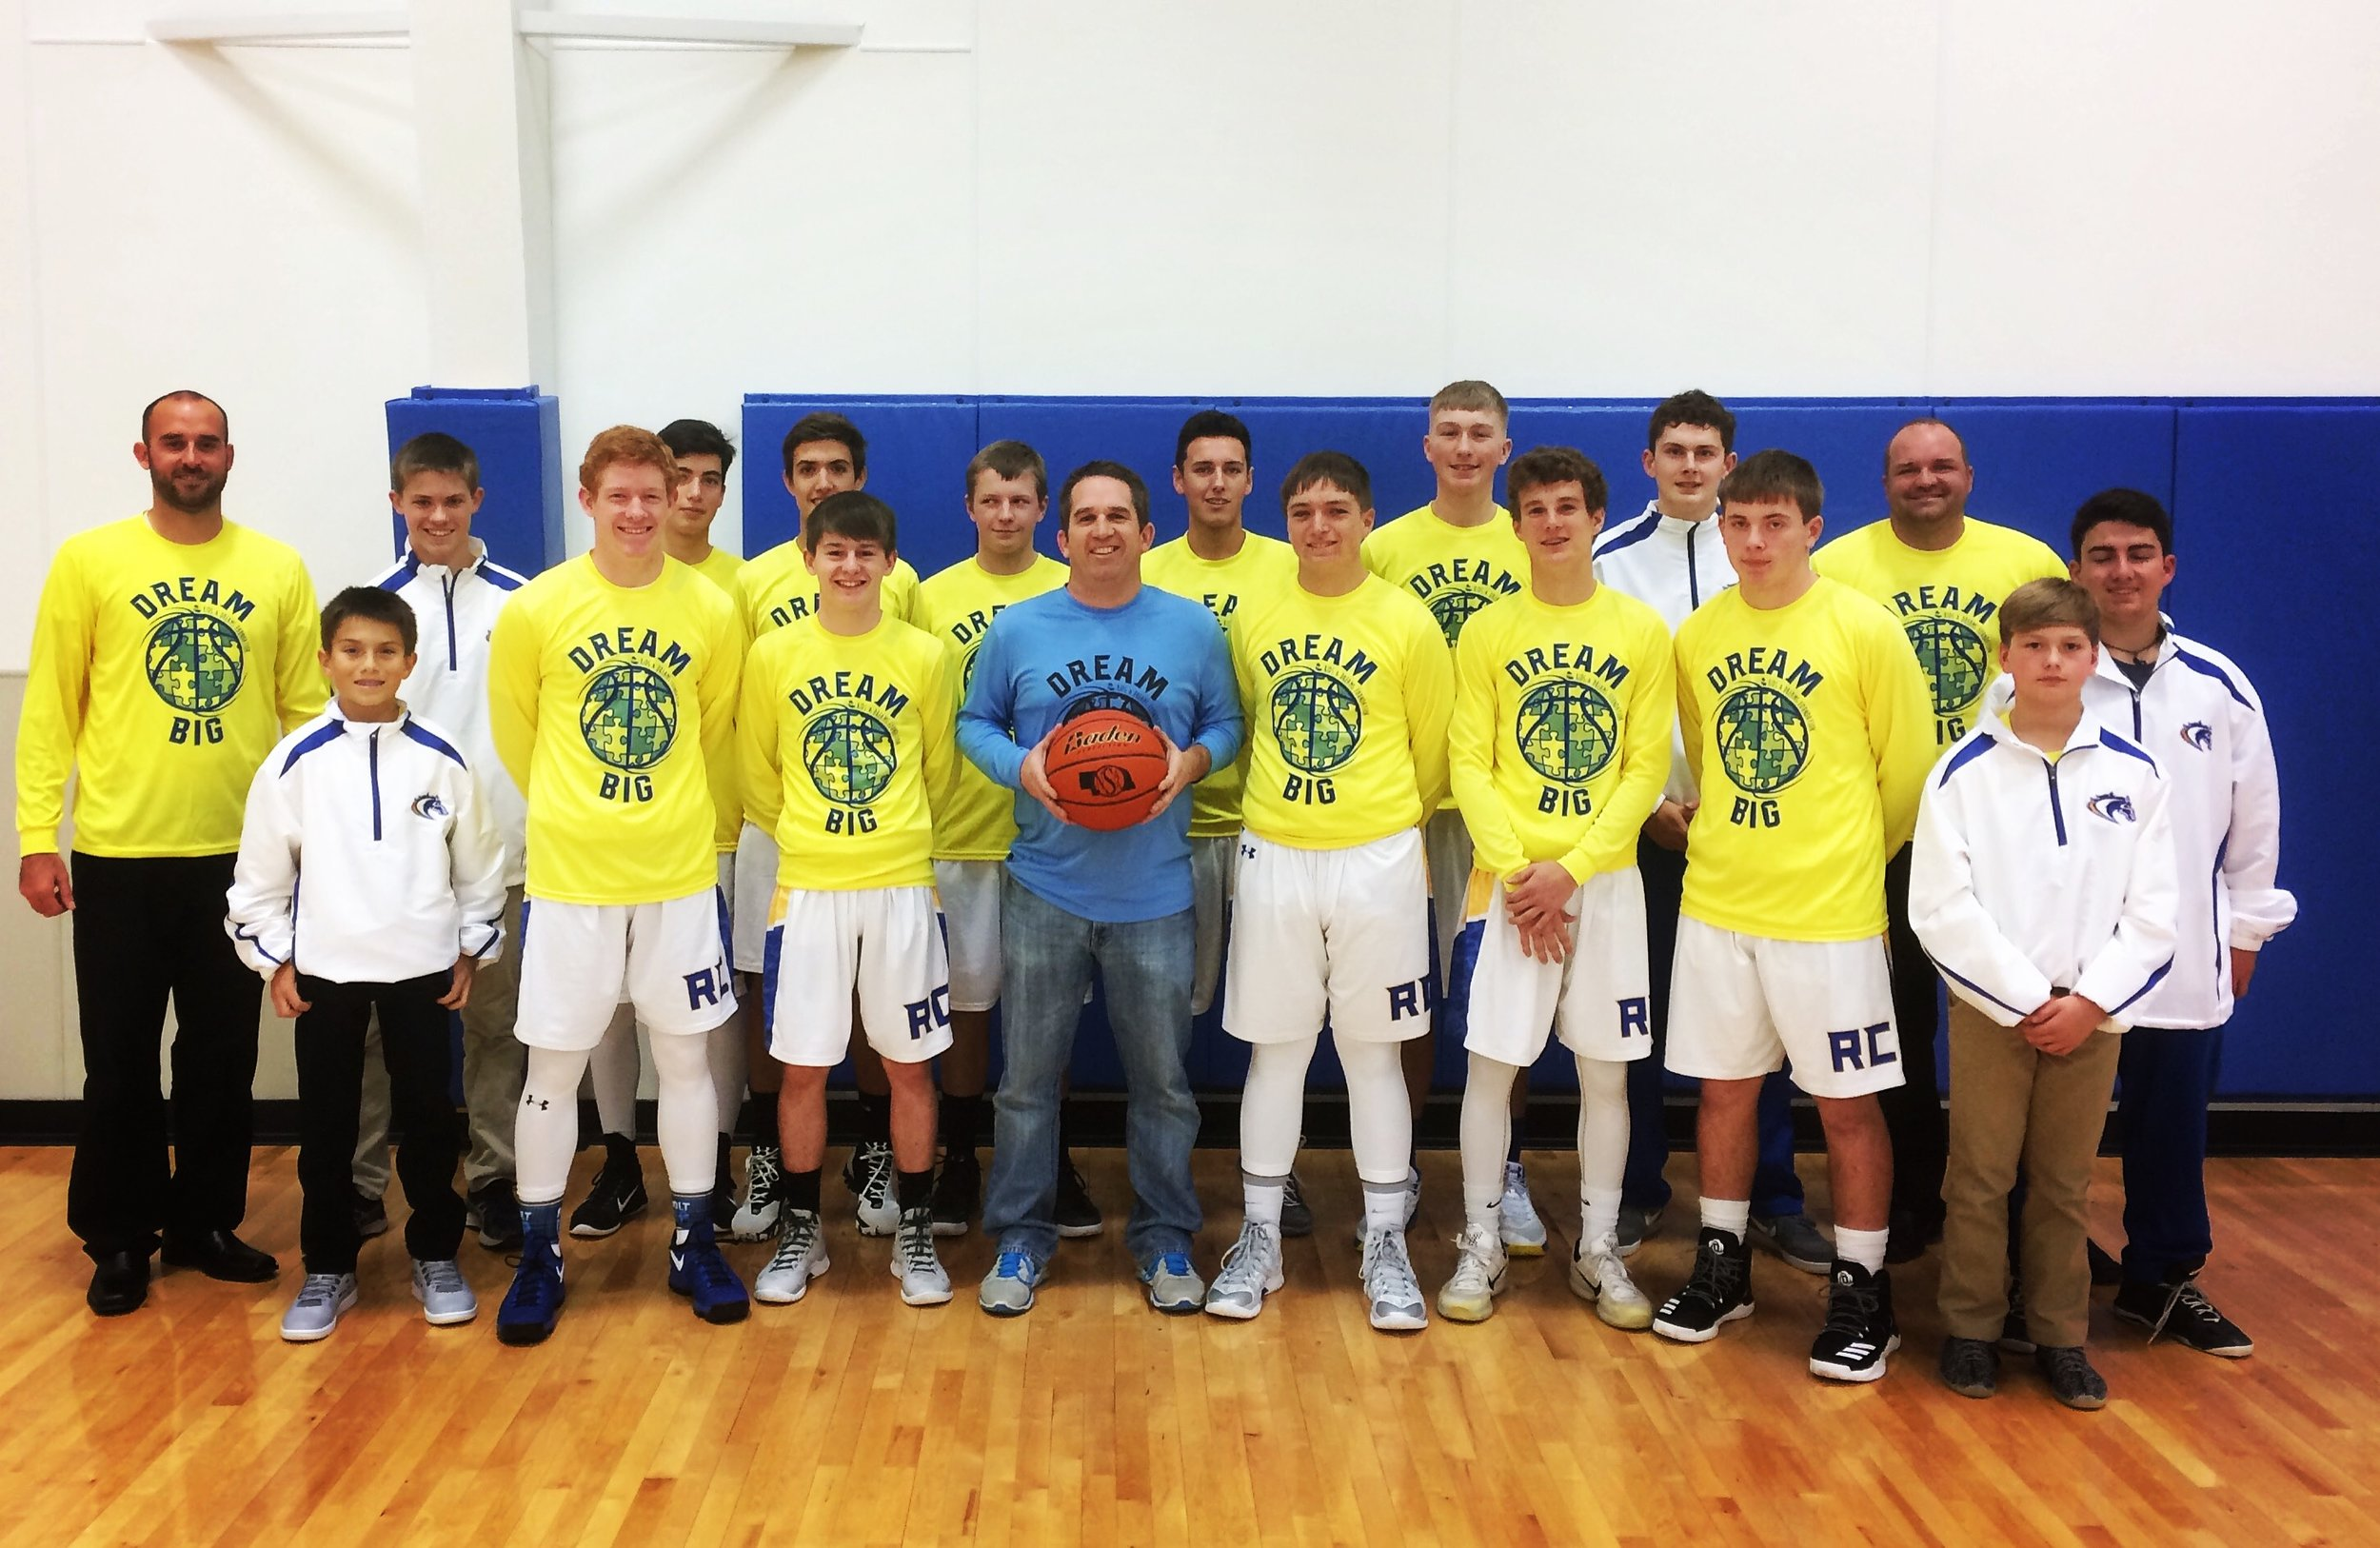 """Riverside Chargers """"Dream Big"""" Awareness Outing-Love the bright yellow & blue shirts! Go Chargers!"""